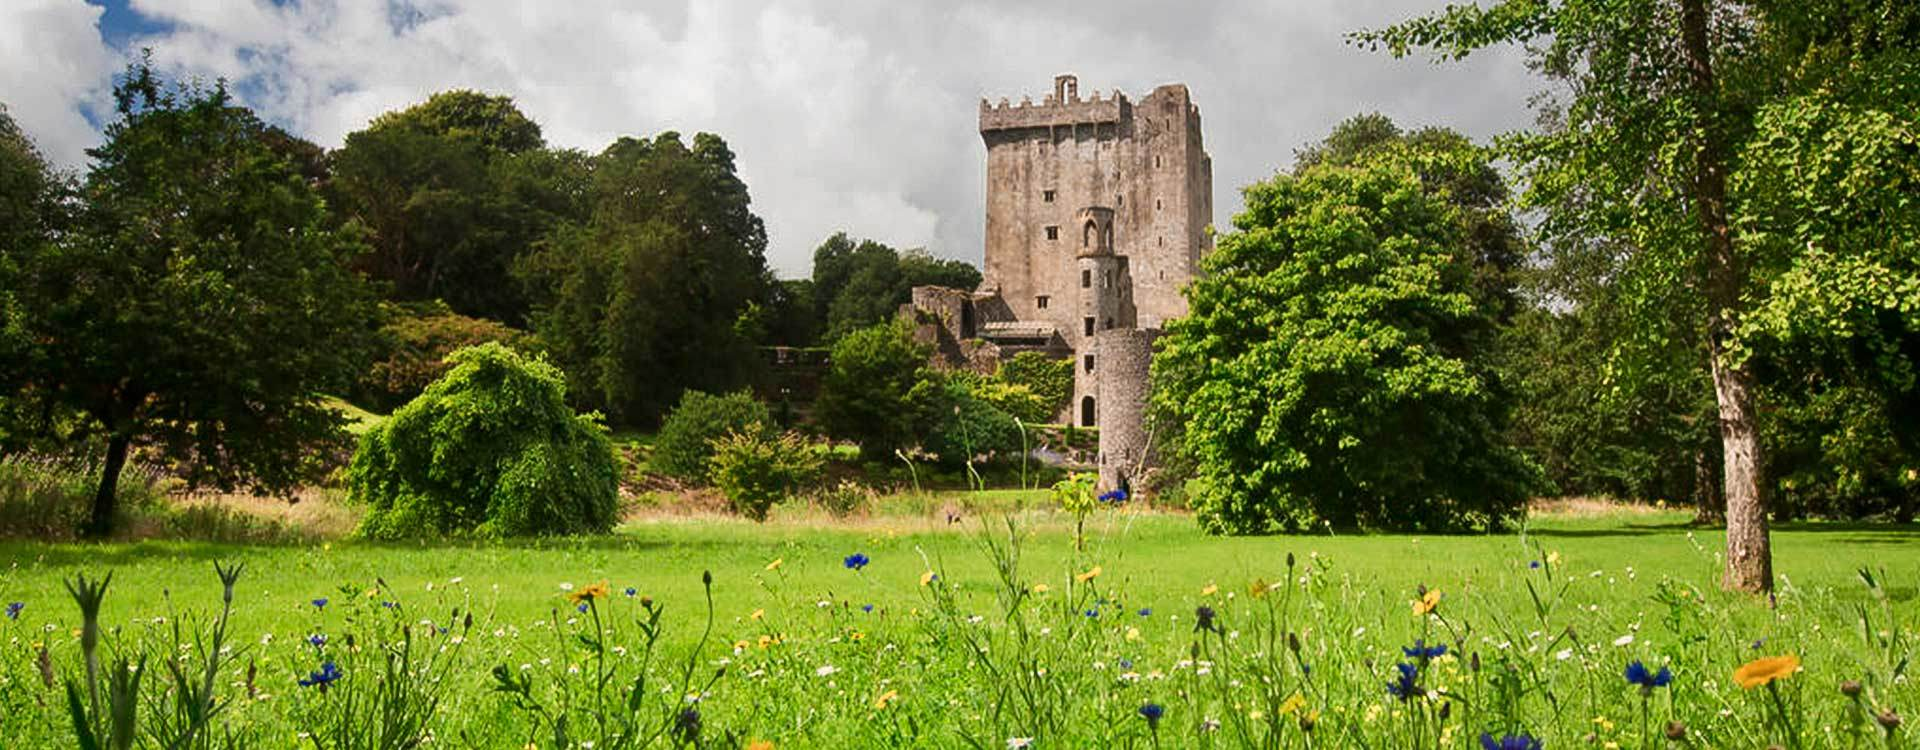 Cork, Blarney Castle & Rock of Cashel Day Tour from Dublin